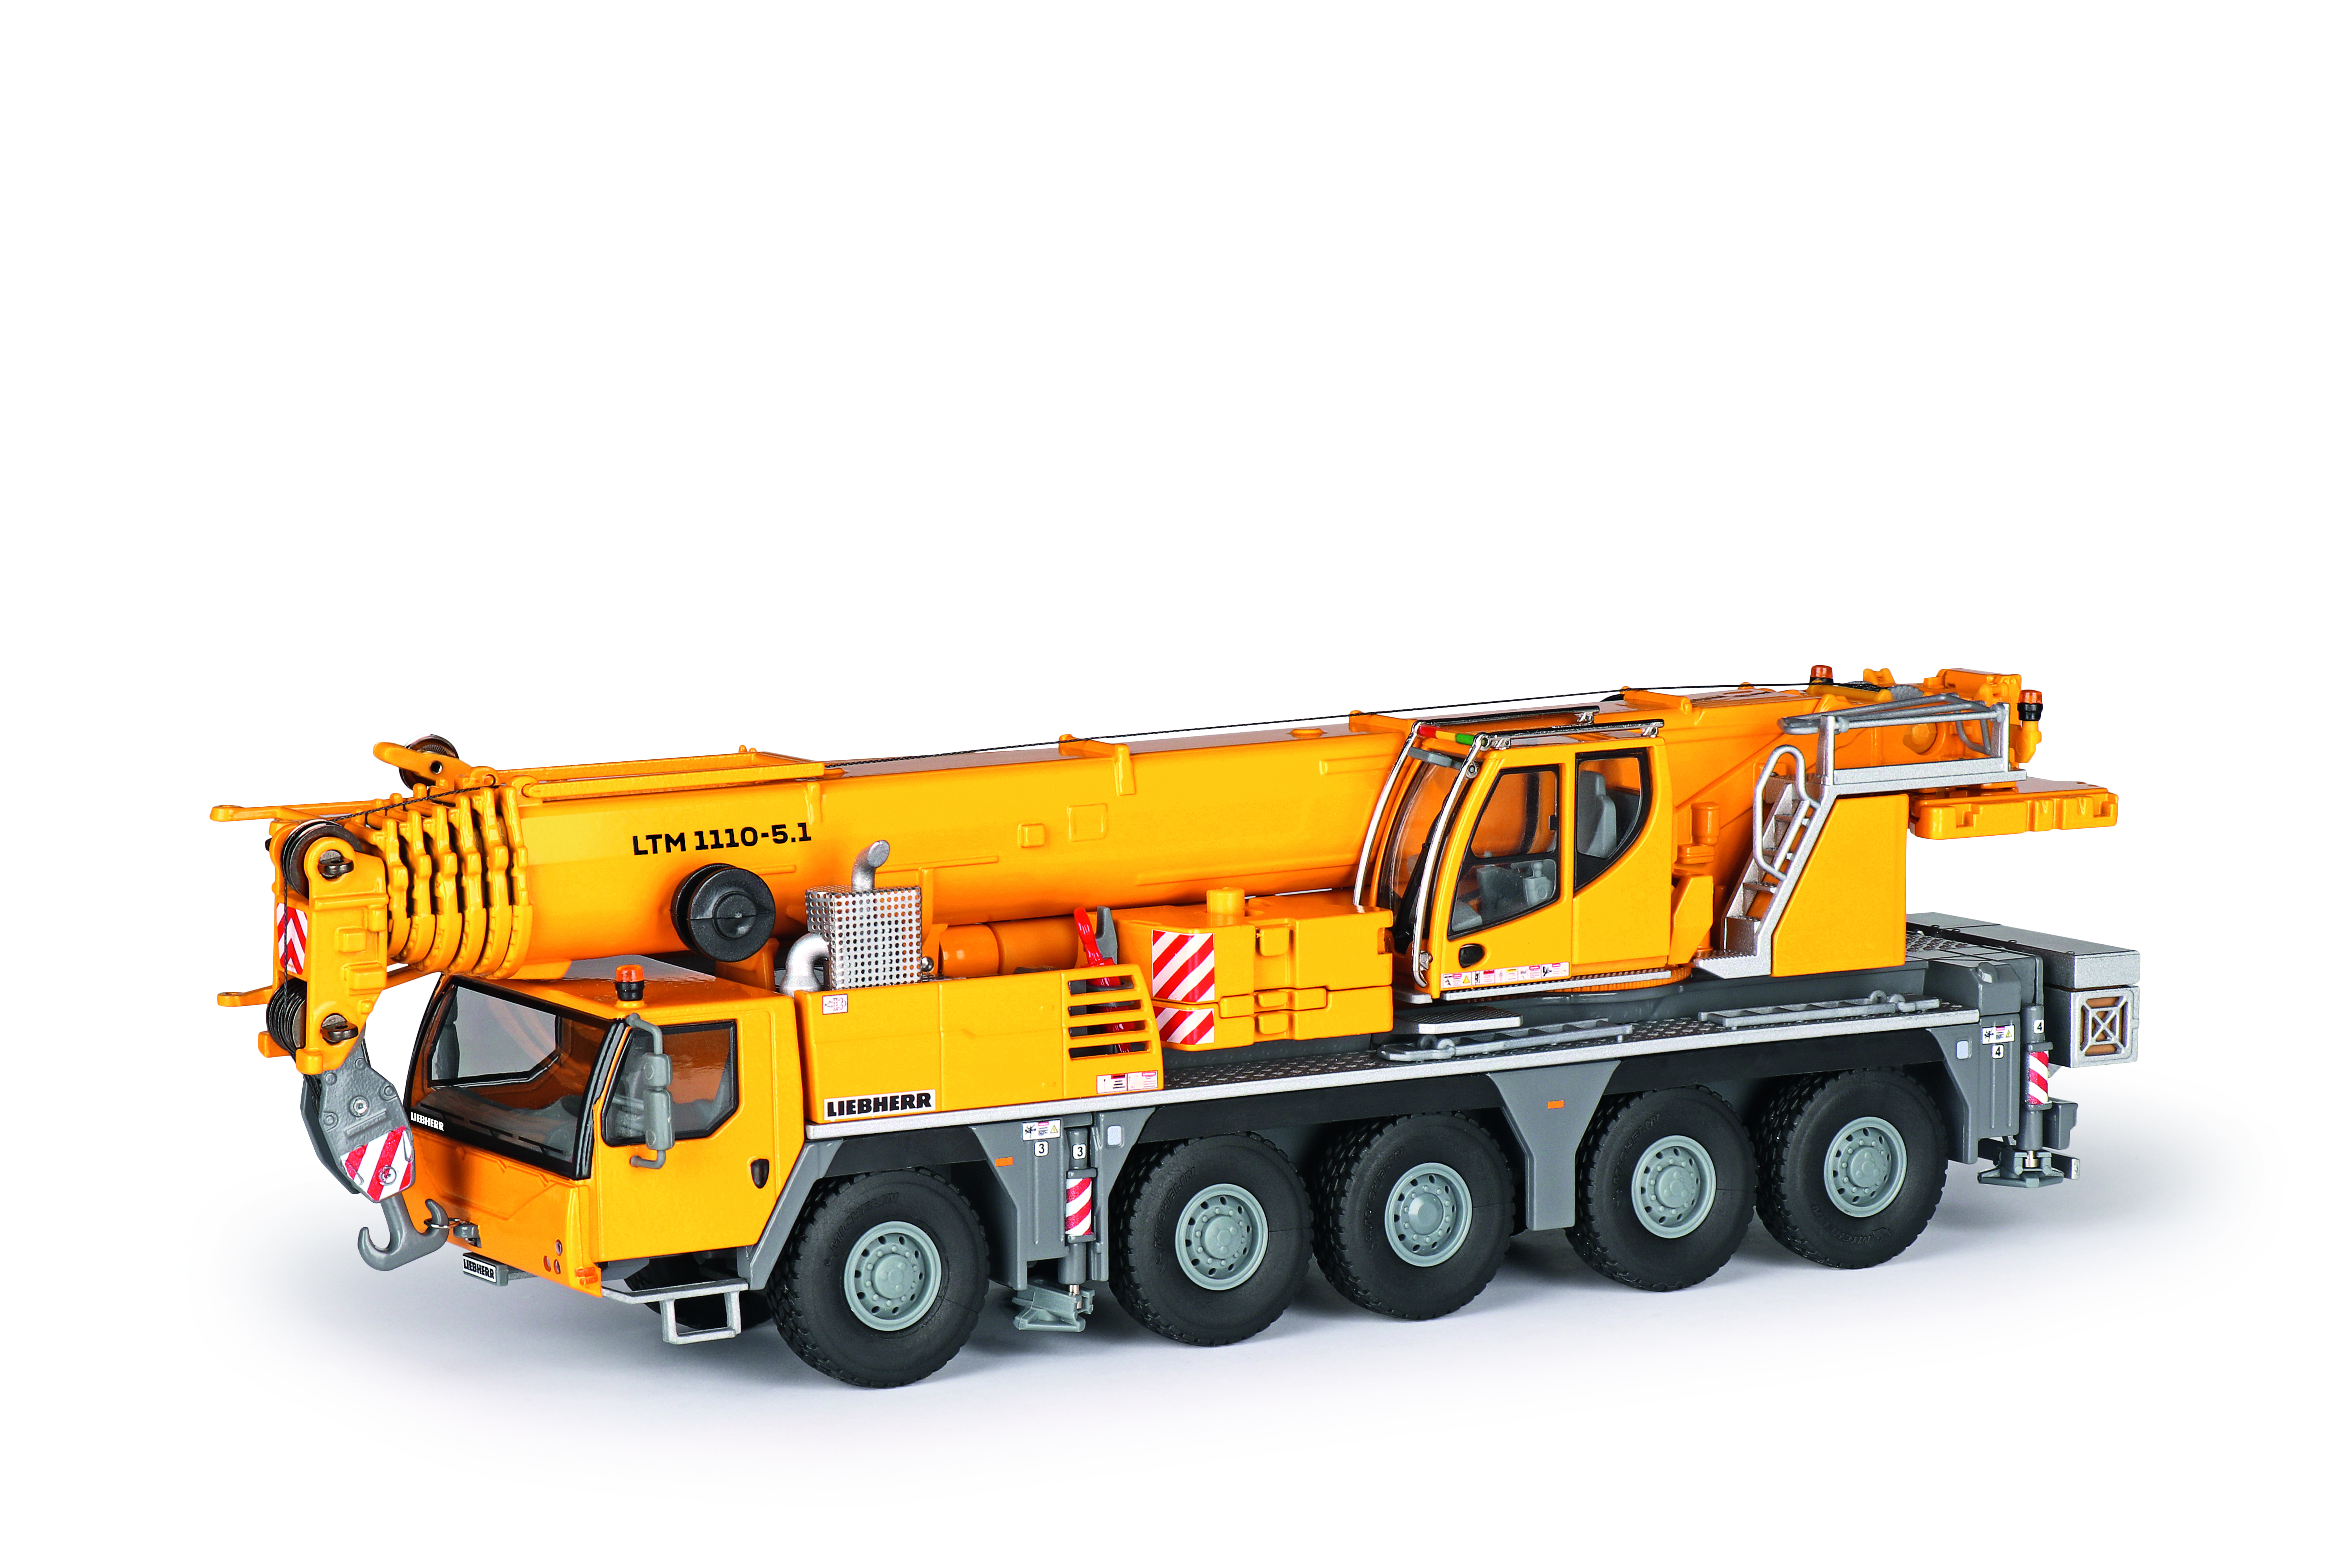 A lightweight for heavy cases - the Liebherr LTM 1110-5.1